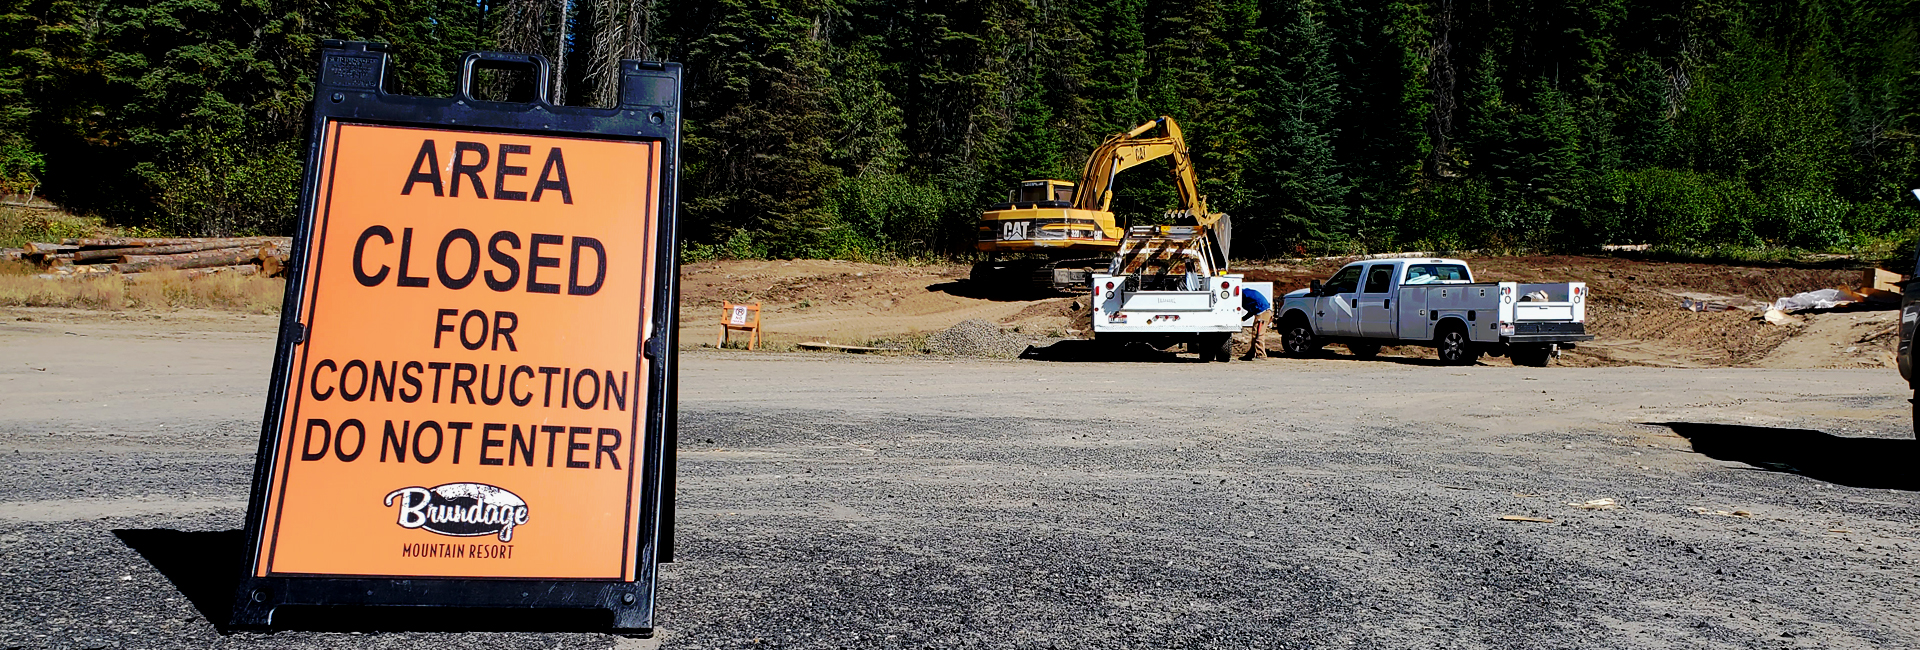 [satisfy]Brundage Base Area Is [/satisfy] CLOSED For Construction